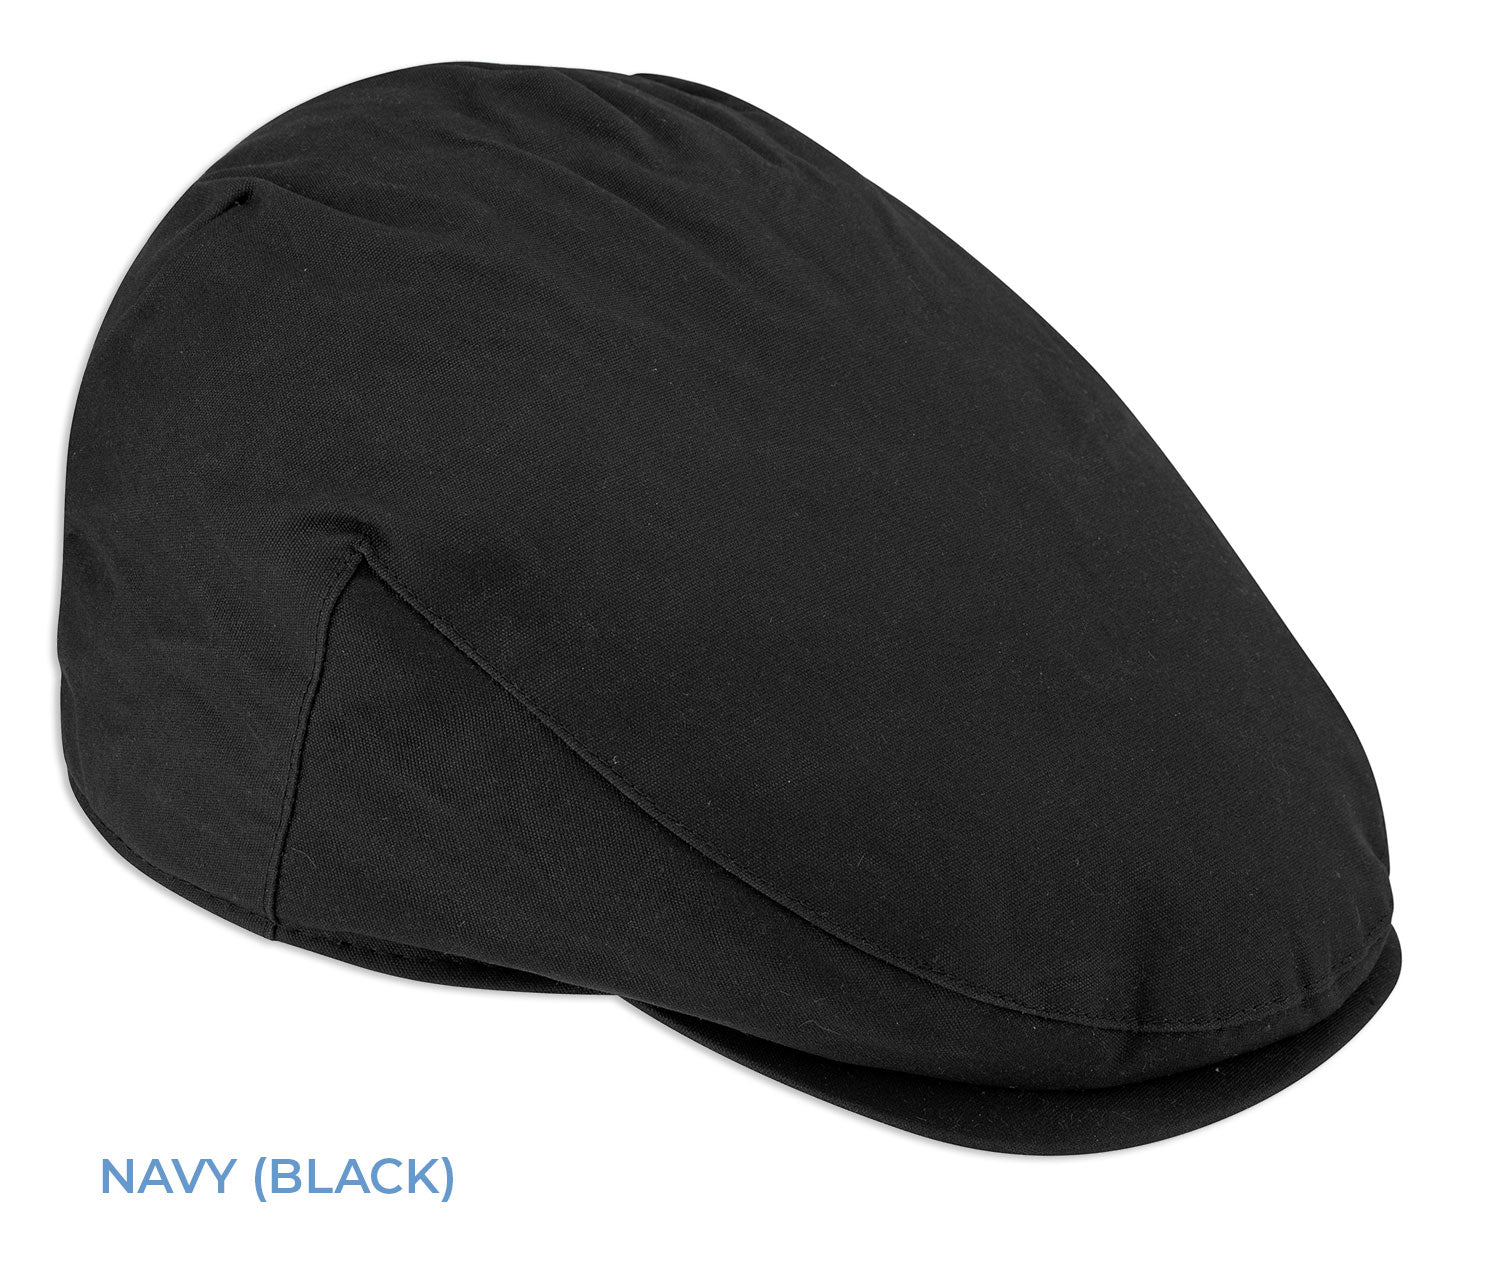 Hoggs of fife wax flap cap in navy Black